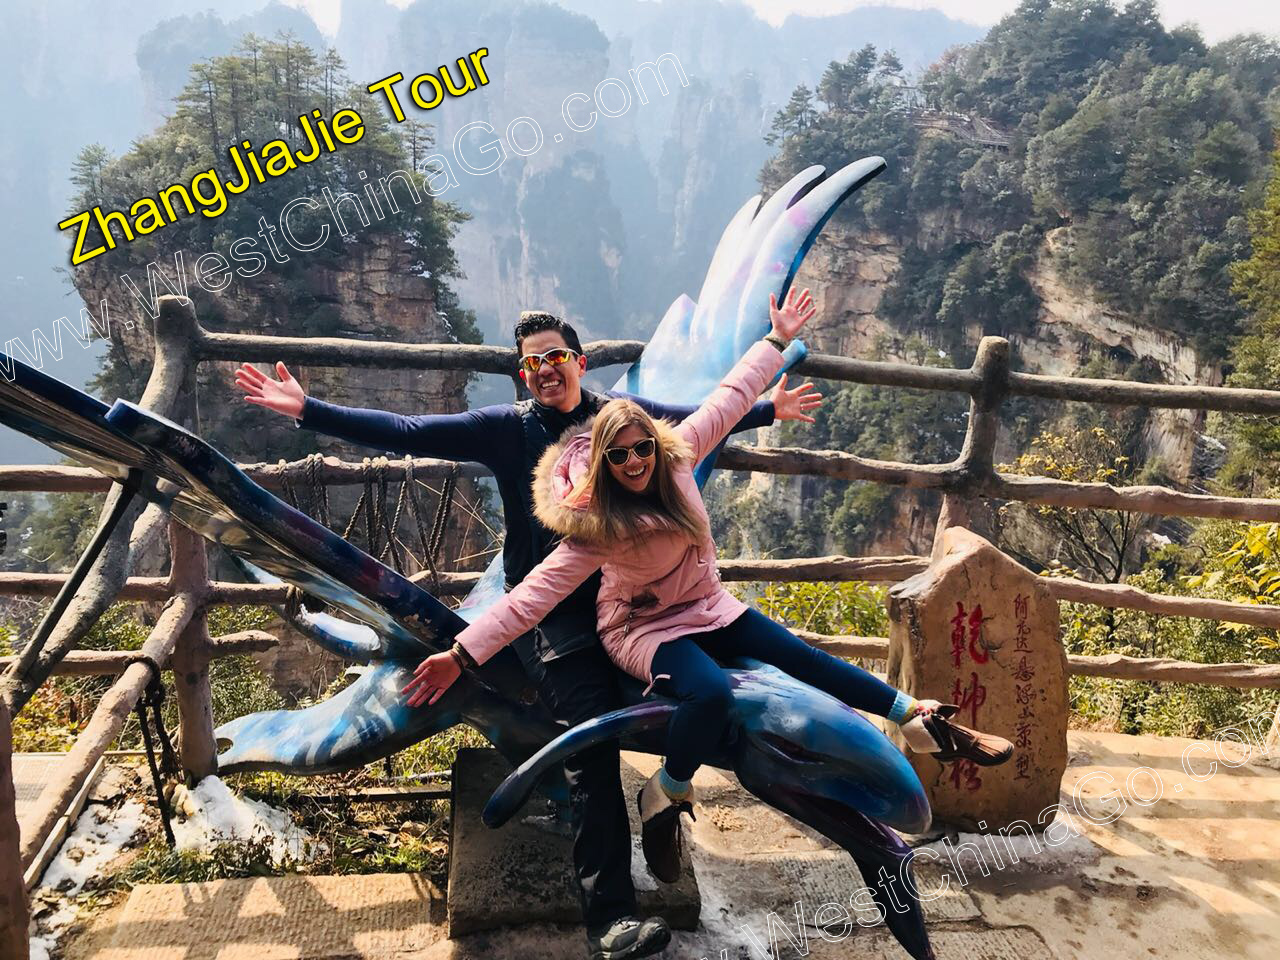 china zhangjiajie tours 2018